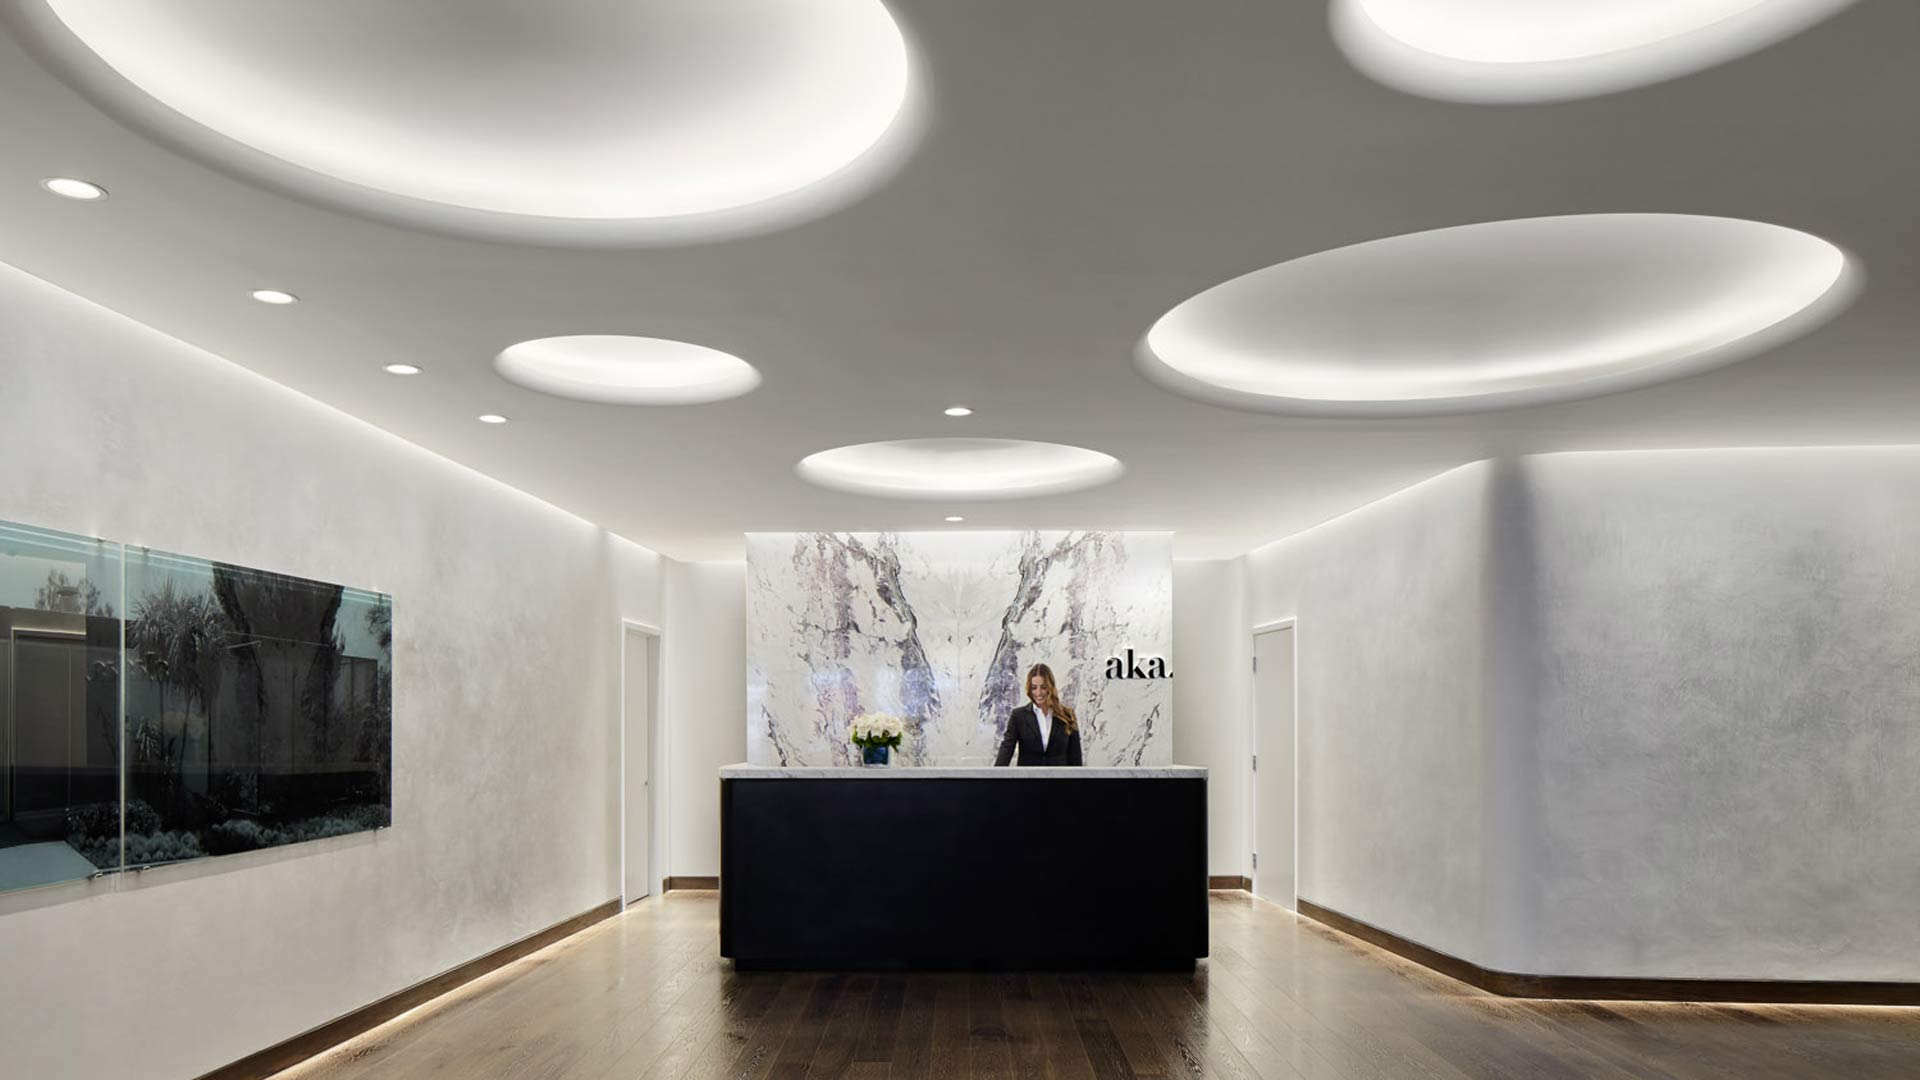 Lovely Oculus Light Studio | An Architectural Lighting Design Firm